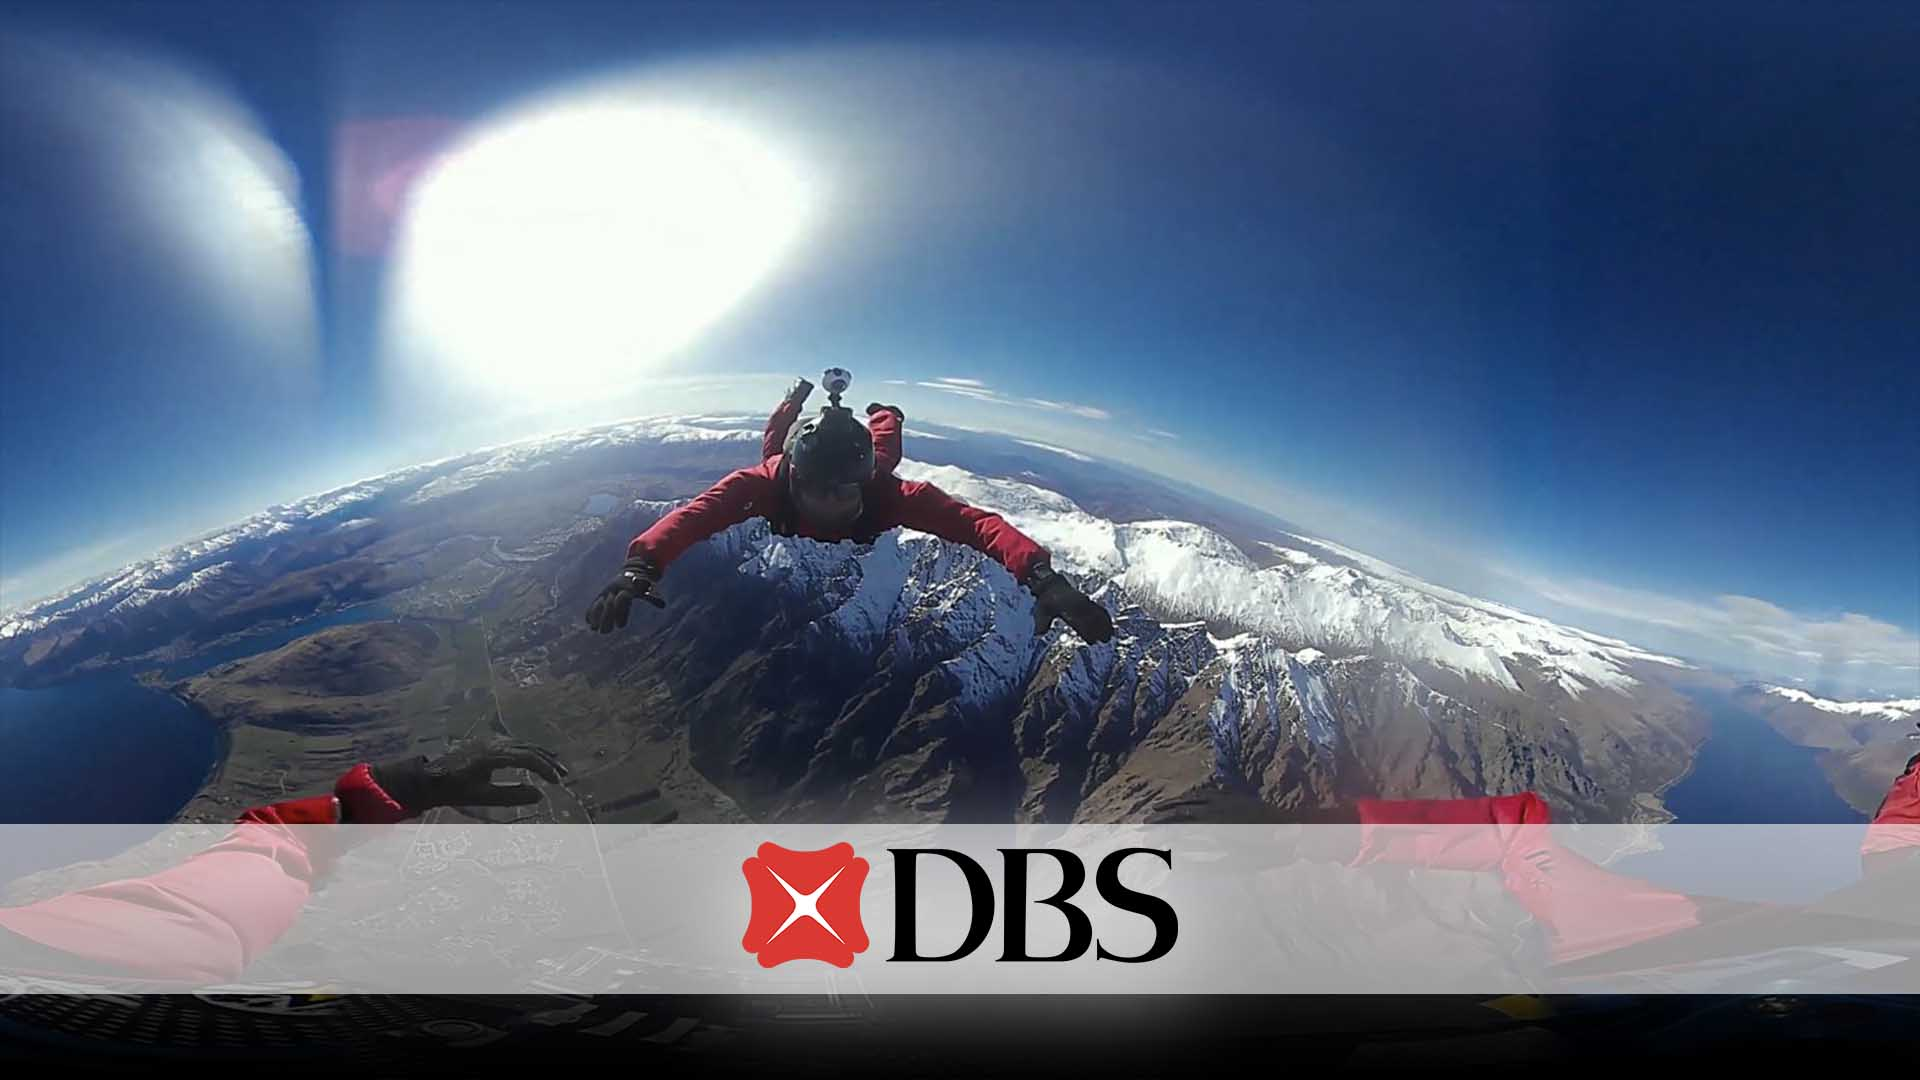 DBS Mutli-Currency Account VR Campaign